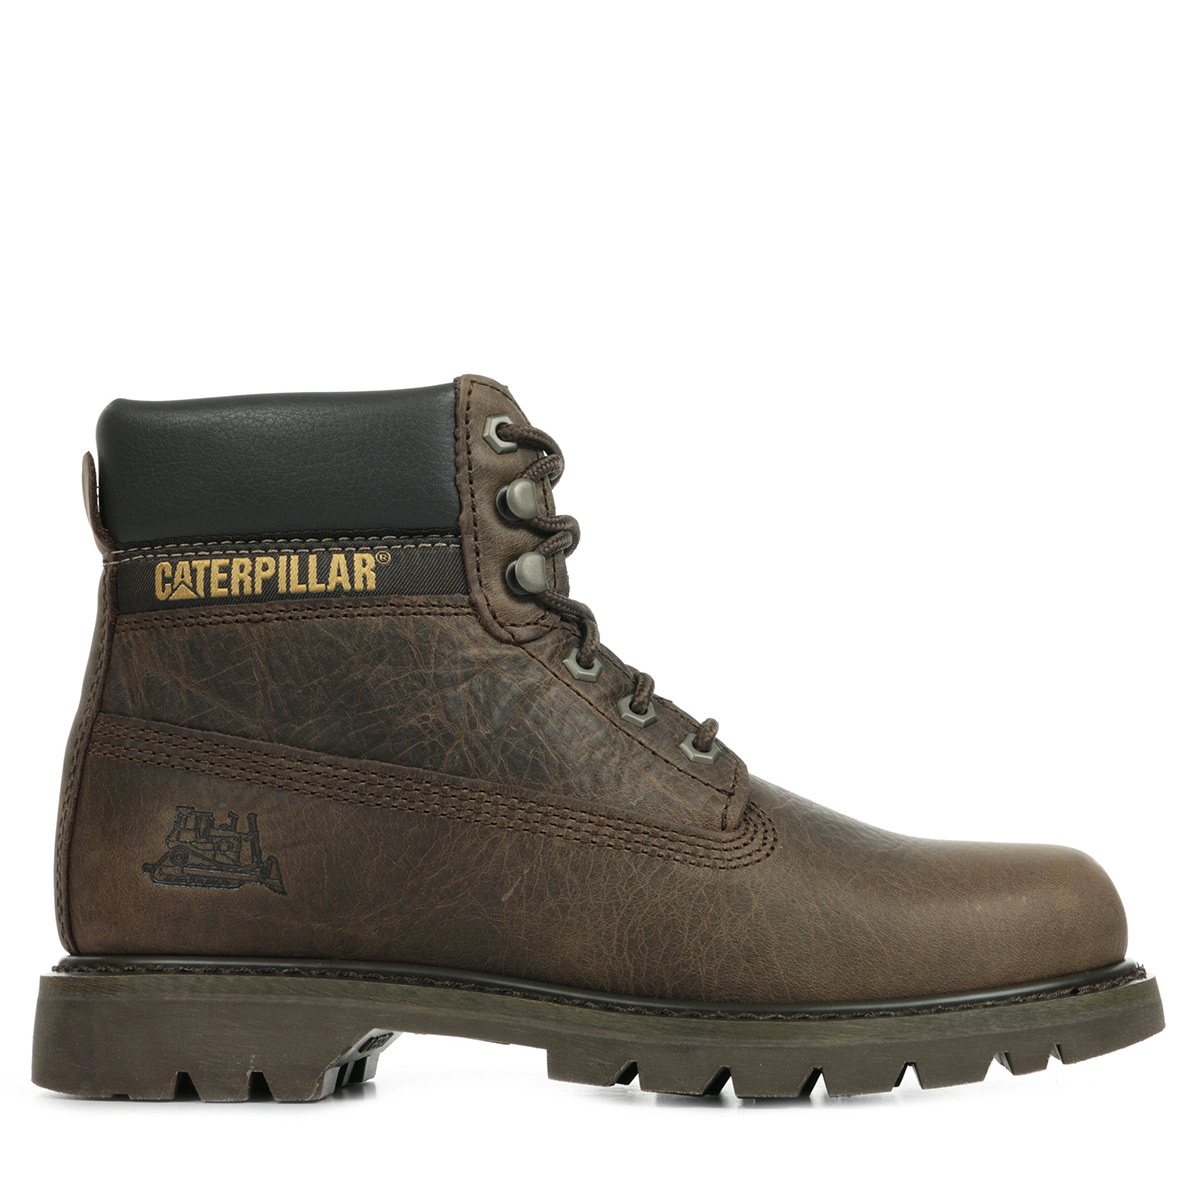 chaussures boots caterpillar homme colorado taille marron cuir lacets ebay. Black Bedroom Furniture Sets. Home Design Ideas